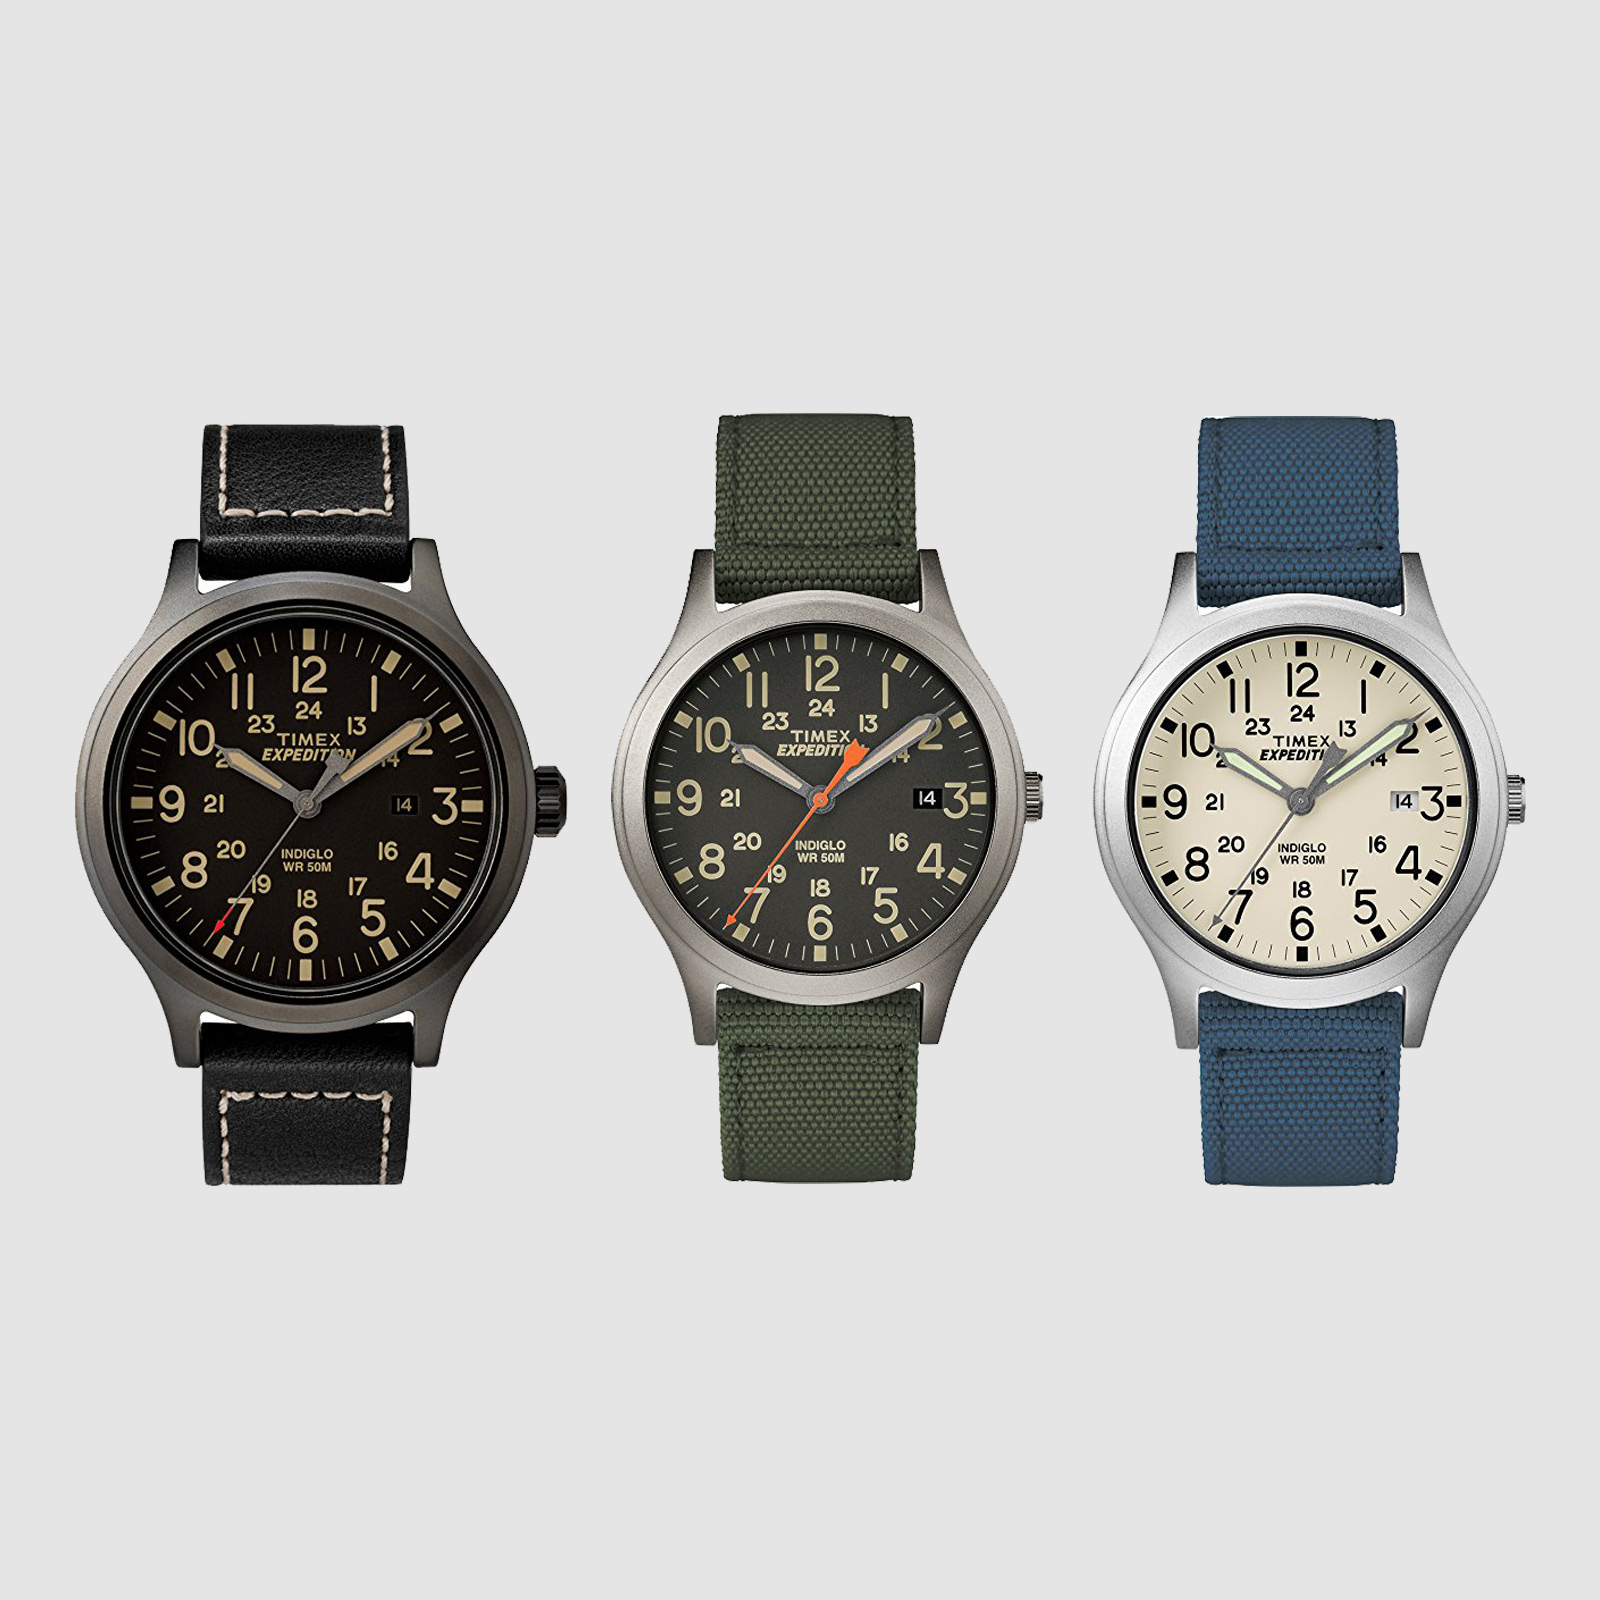 Timex Expedition Watches | $33-$50 | Amazon